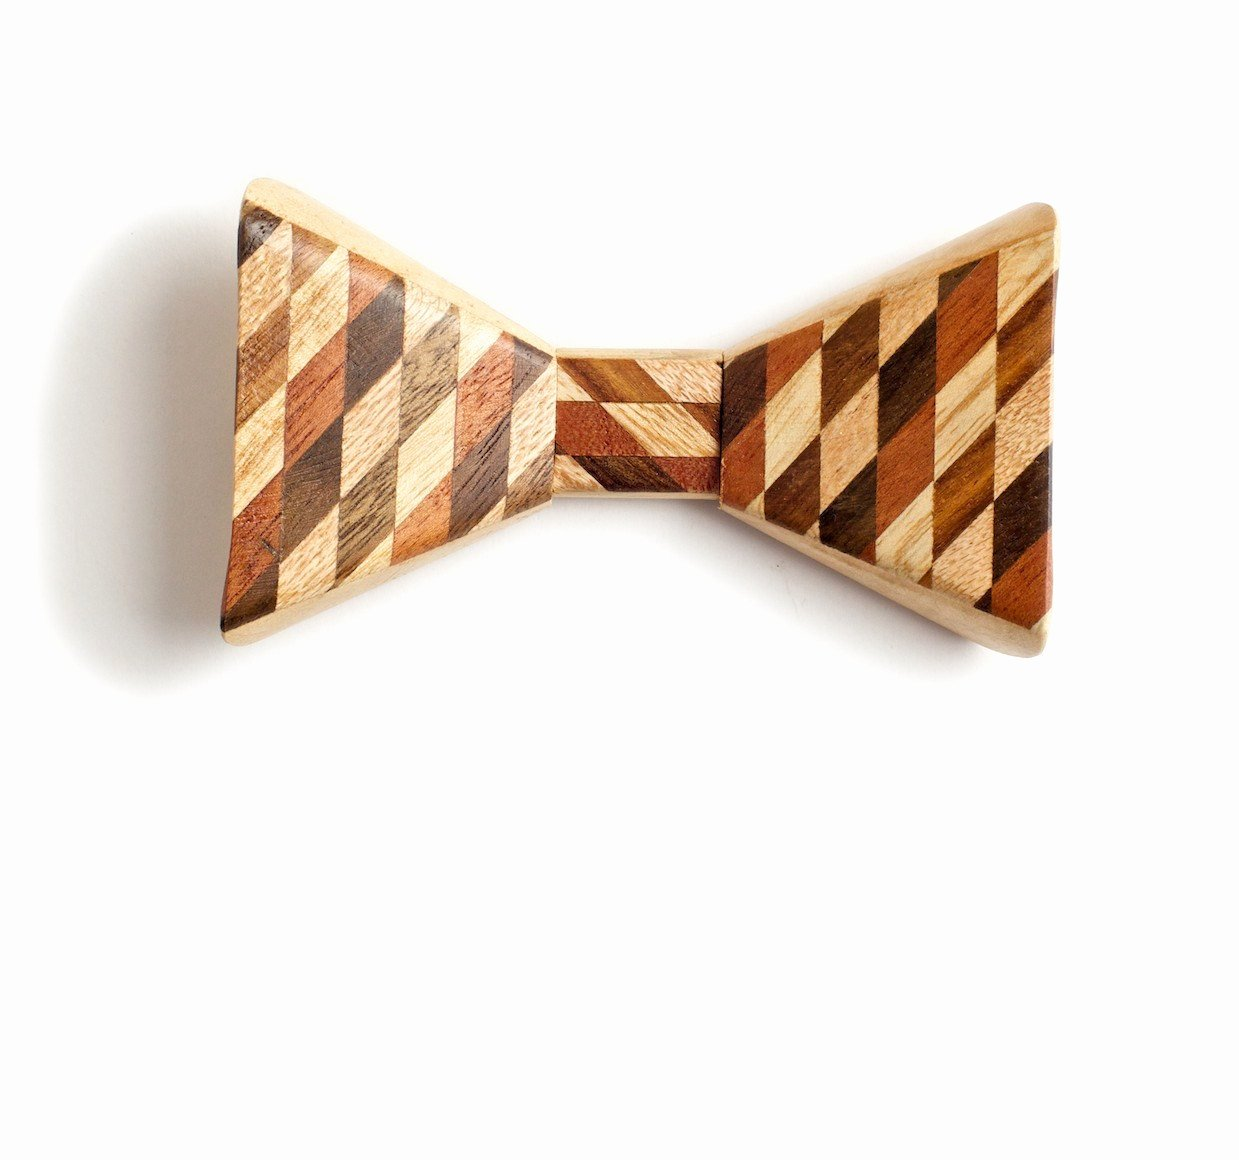 Wooden Bow Tie Template Fresh 22 Creative Woodworking Bow Tie Template